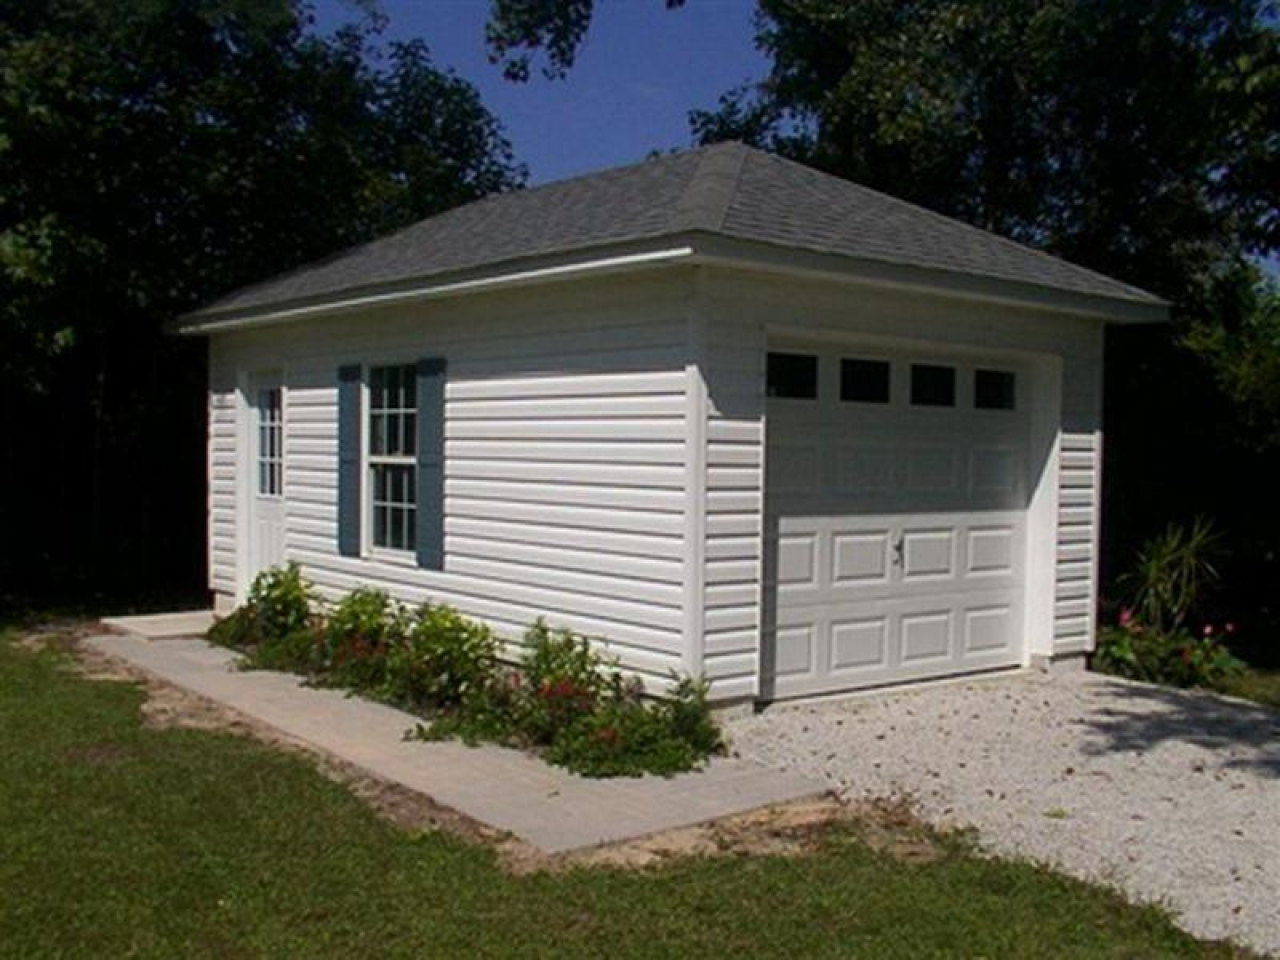 12 x 16 garage plans small detached garage plans small for Small garage plans free